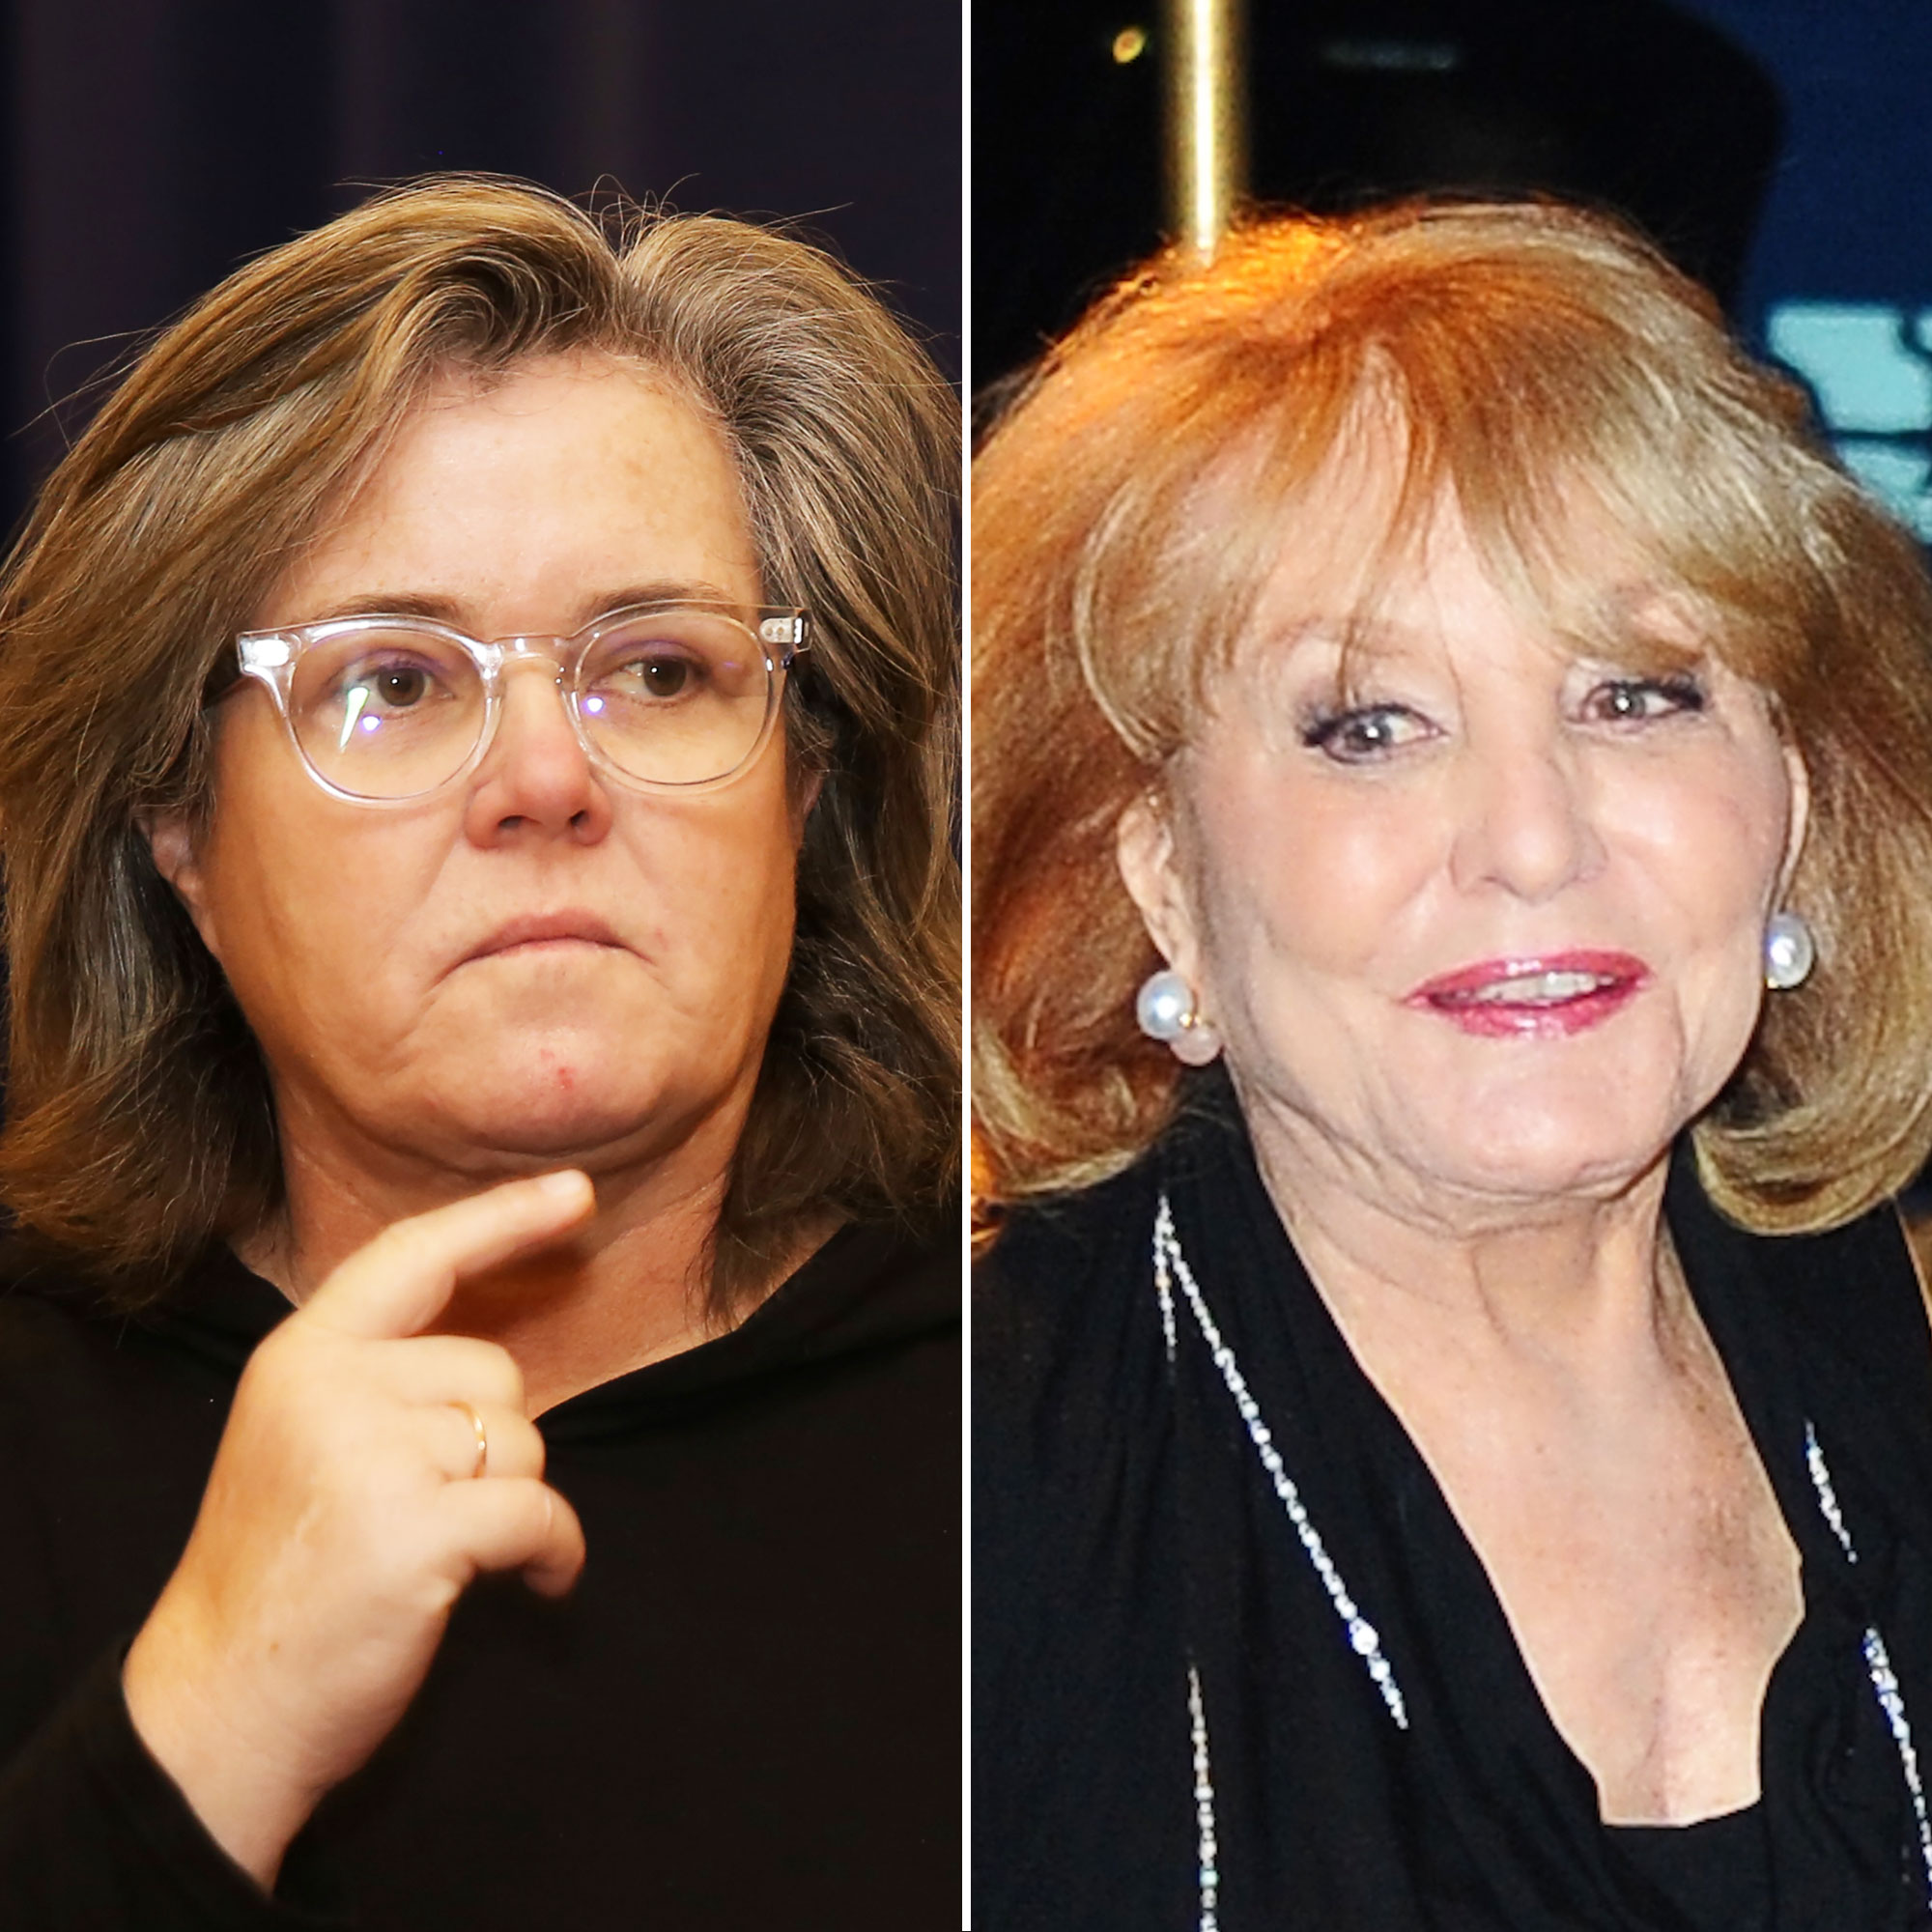 Rosie O'Donnell Barbara Walters She's 'Too Old'! Feuds, Friendships and More Shocking Revelations from 'The View' Tell-All - O'Donnell reportedly butted heads with multiple producers on the show, including Bill Geddie , and director Mark Gentile .